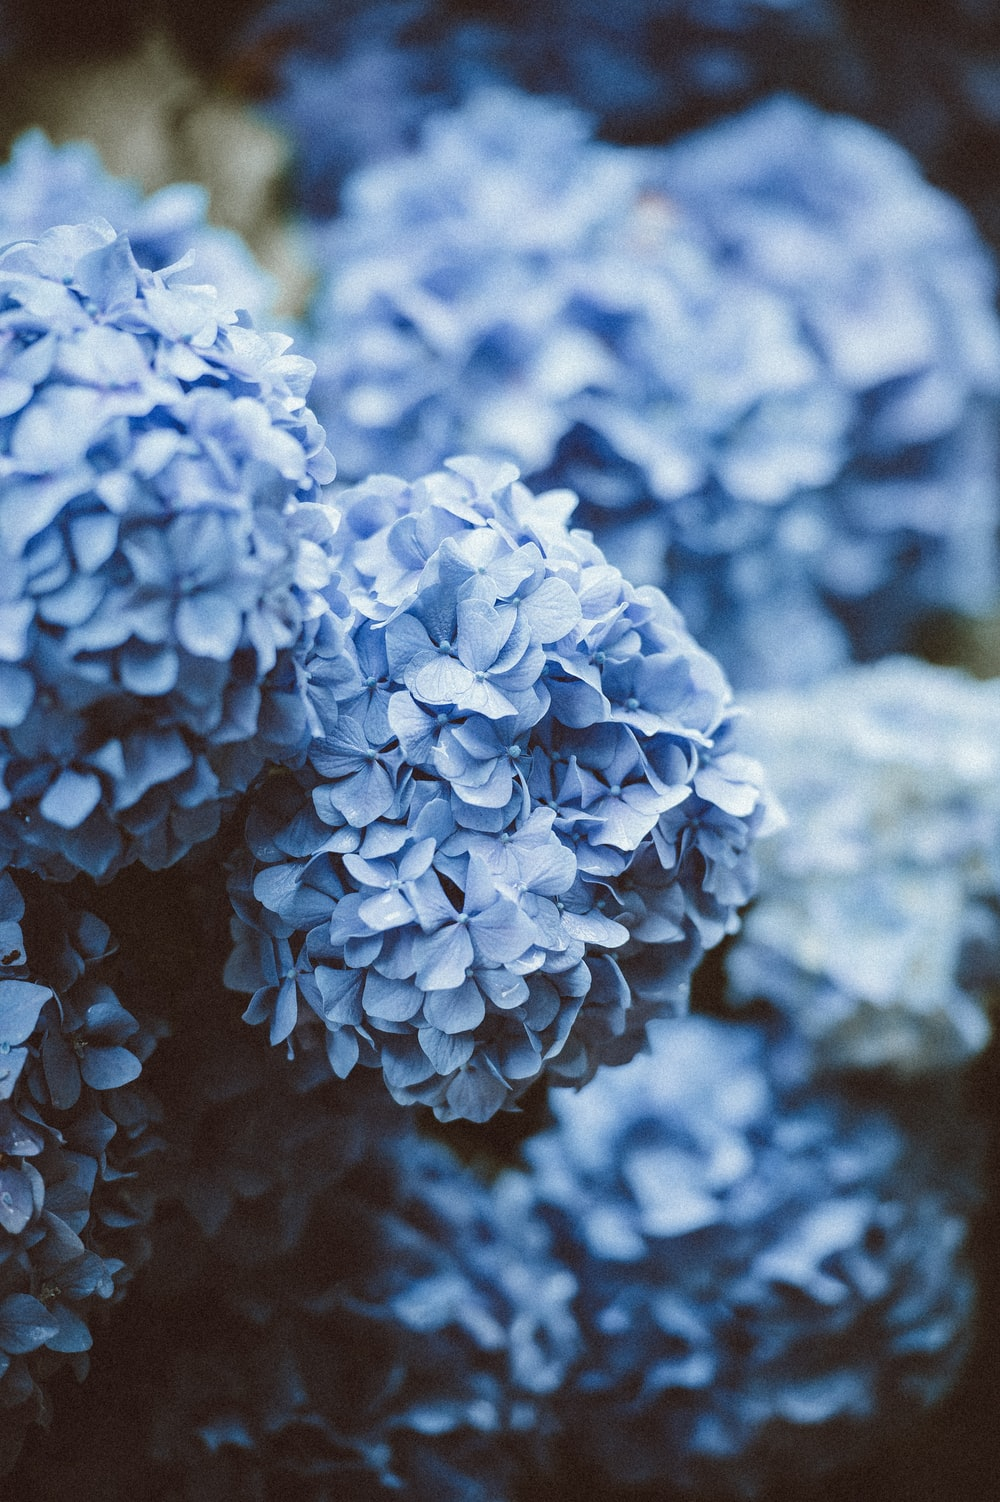 blue hydrangea hd photo by annie spratt anniespratt